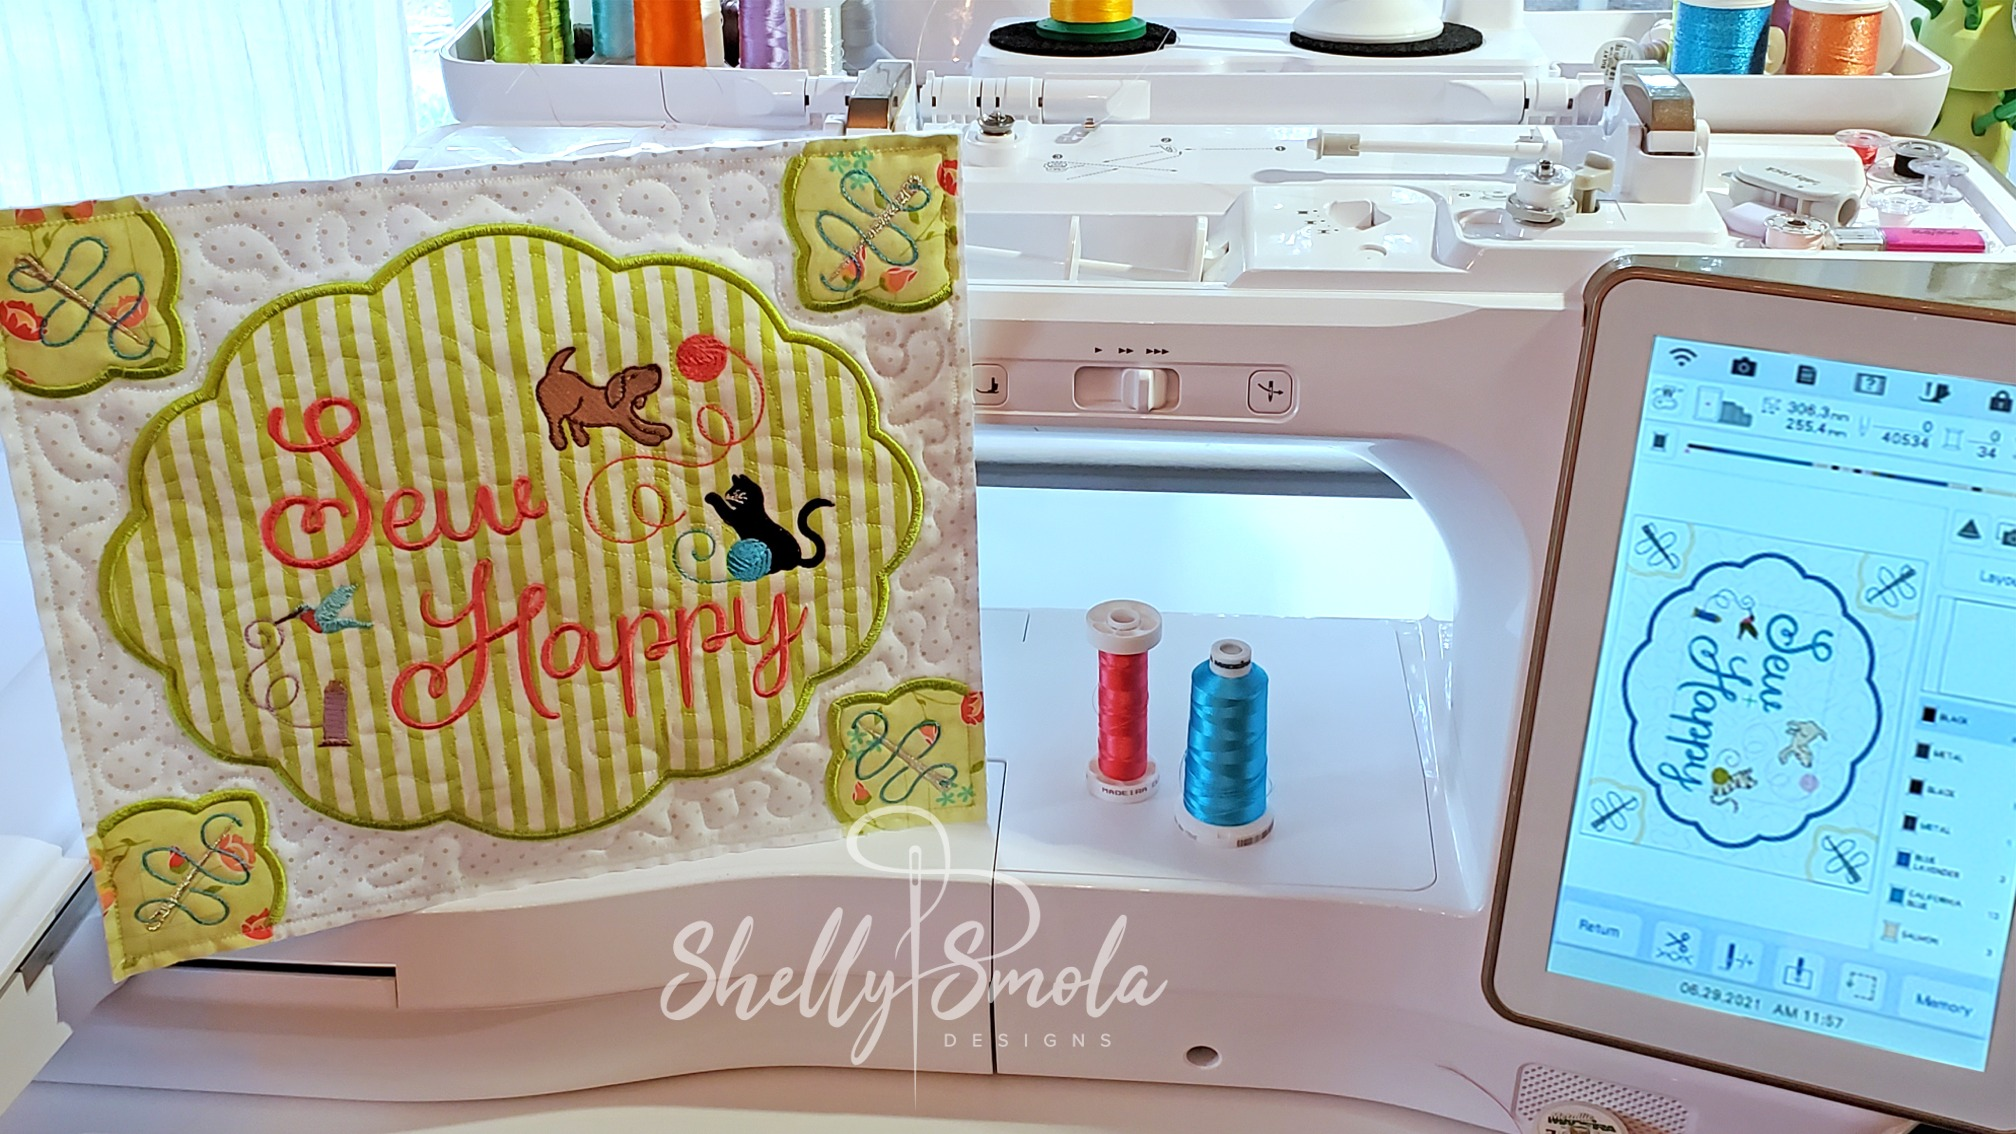 Large Sew Happy Block by Shelly Smola